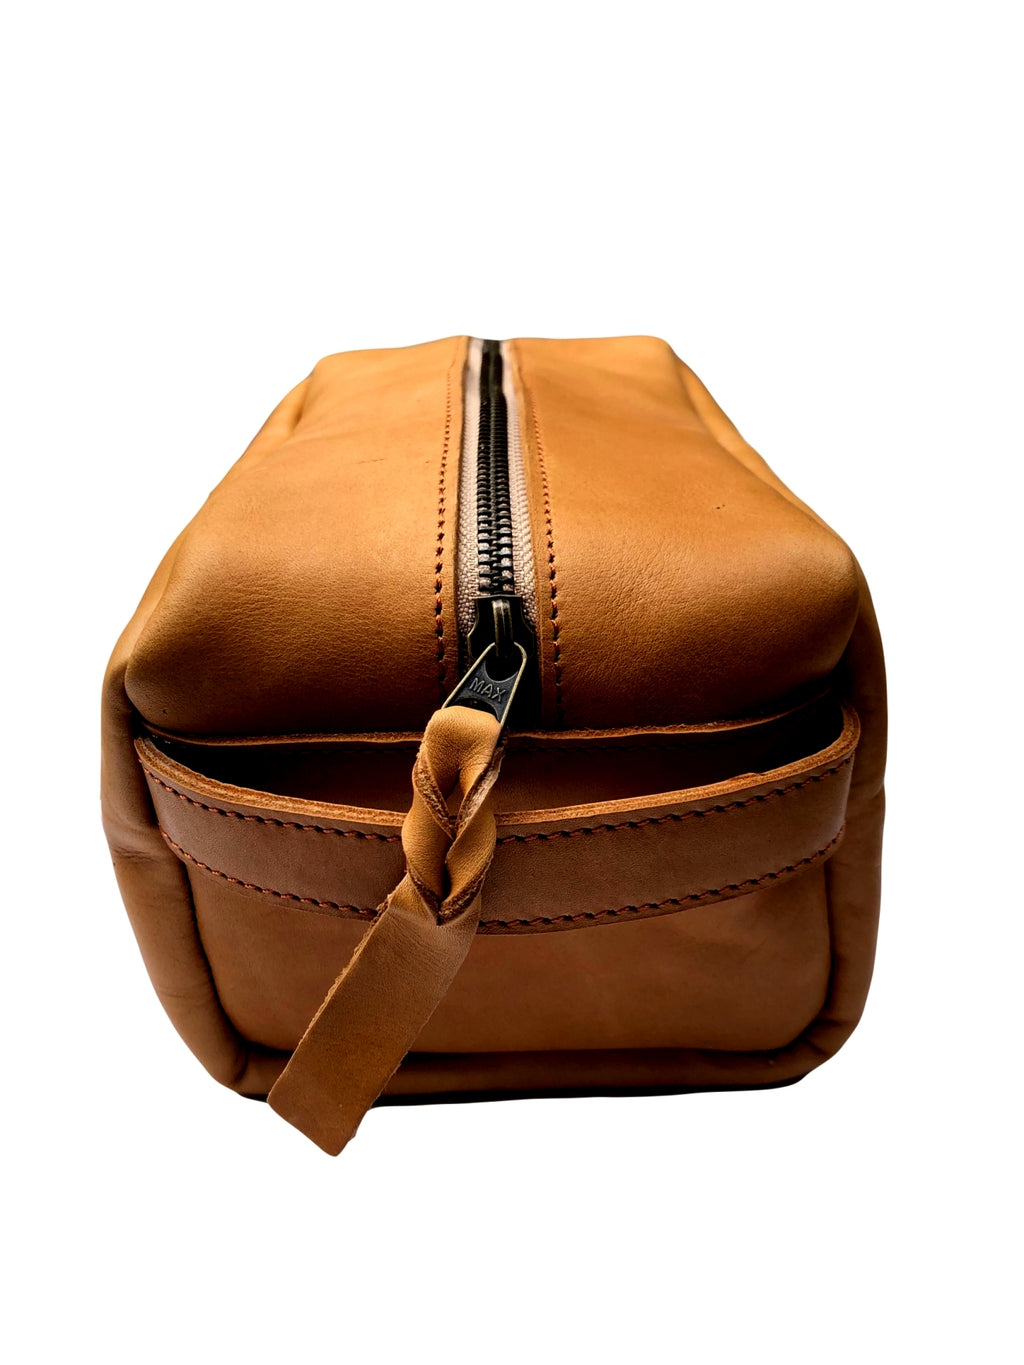 Leather Toiletry Dopp Kit - Tan